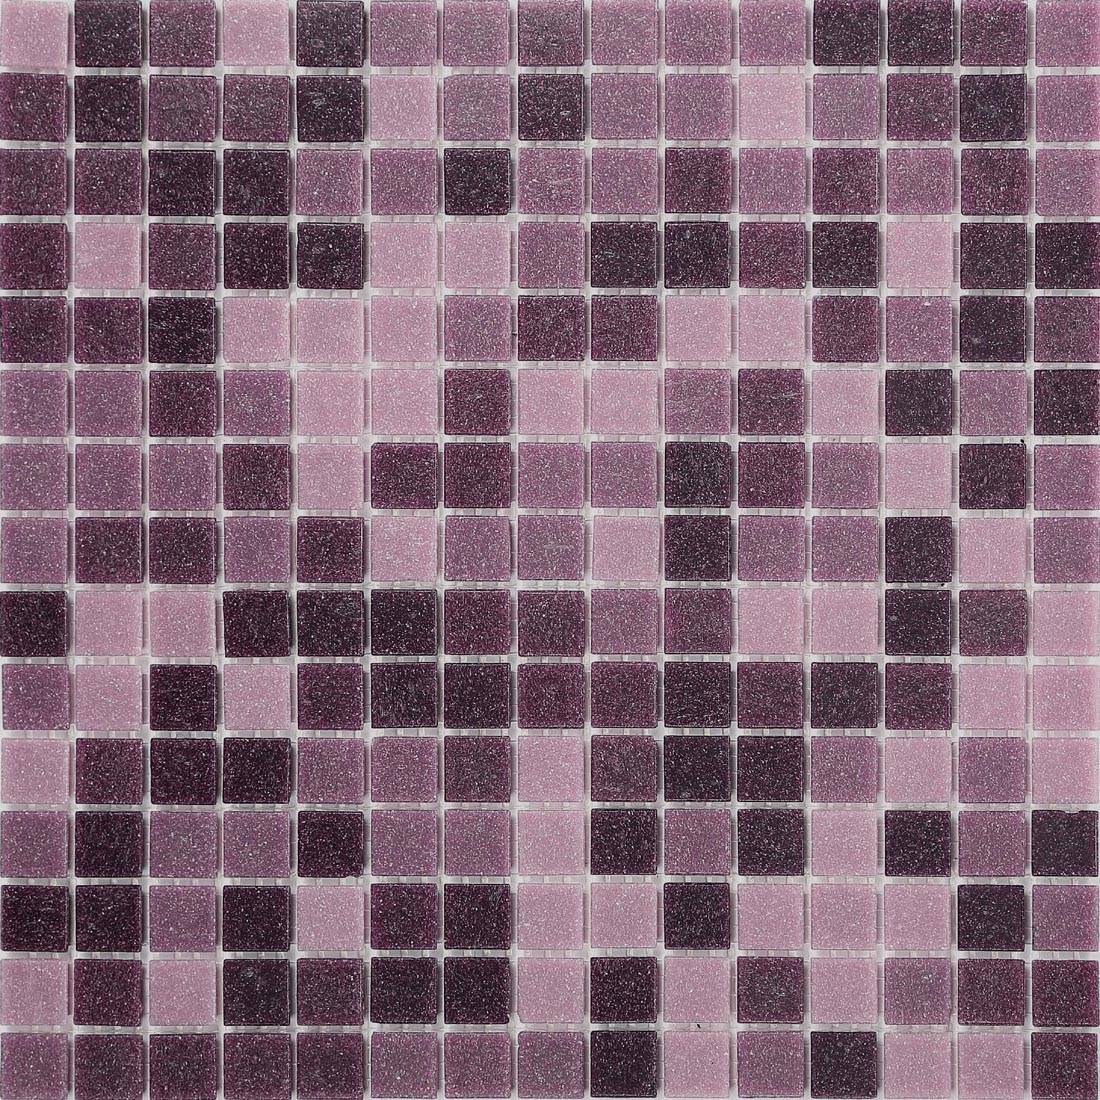 1qm mosaik wand fliesen matte glas lila pink bad dusche. Black Bedroom Furniture Sets. Home Design Ideas